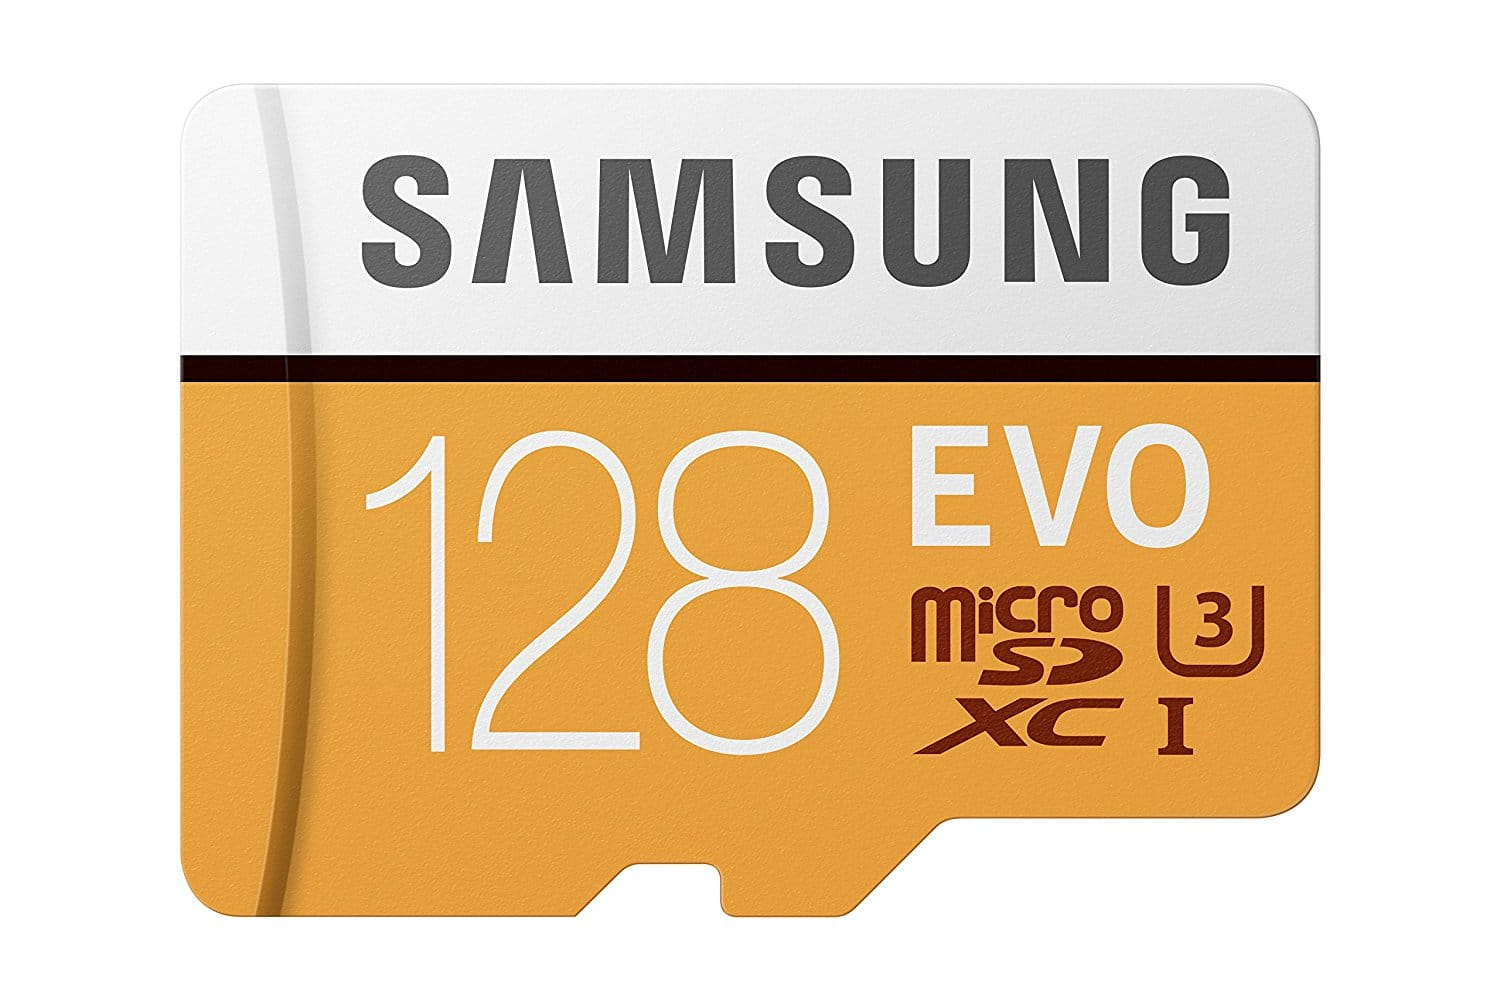 Samsung 128GB EVO Class 10 Micro SDXC Card with Adapter - $13 YMMV In-Store only